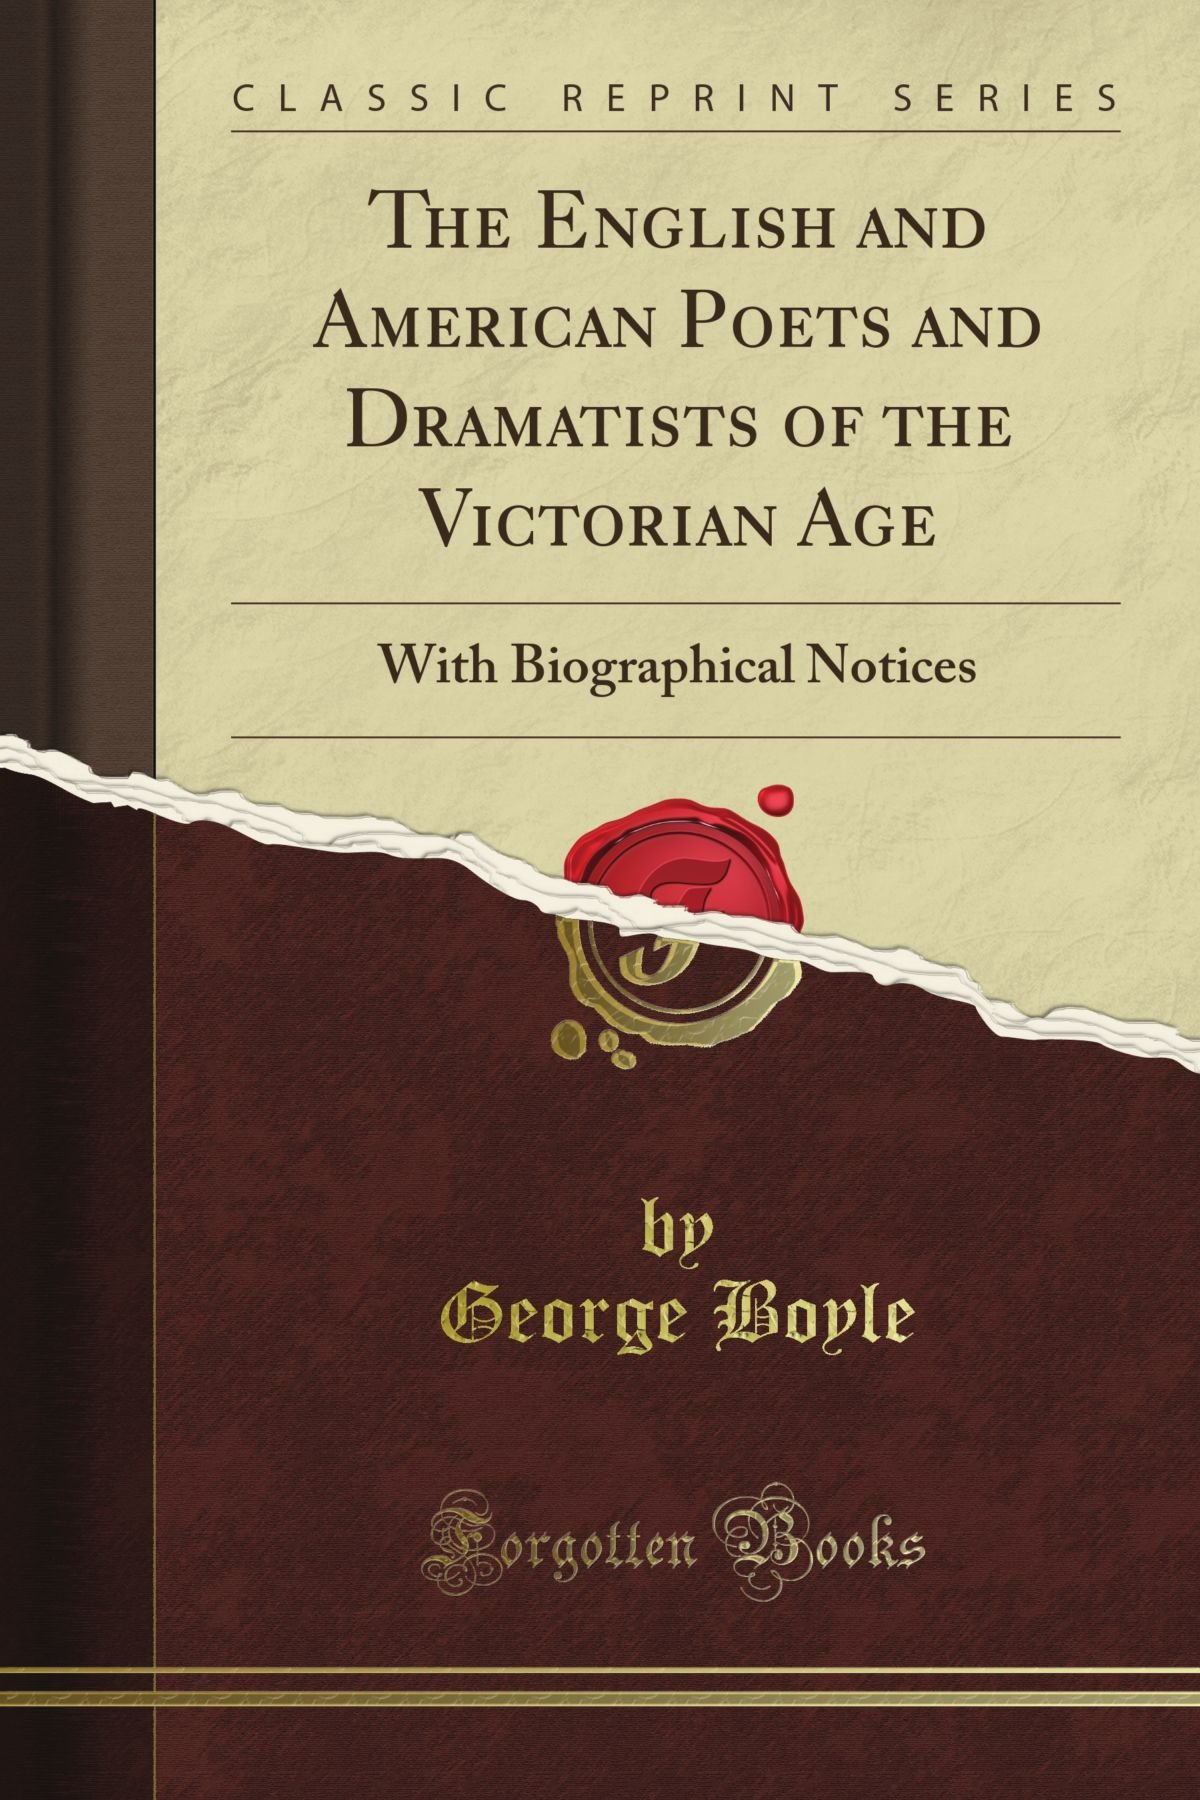 The English and American Poets and Dramatists of the Victorian Age: With Biographical Notices (Classic Reprint) ePub fb2 ebook